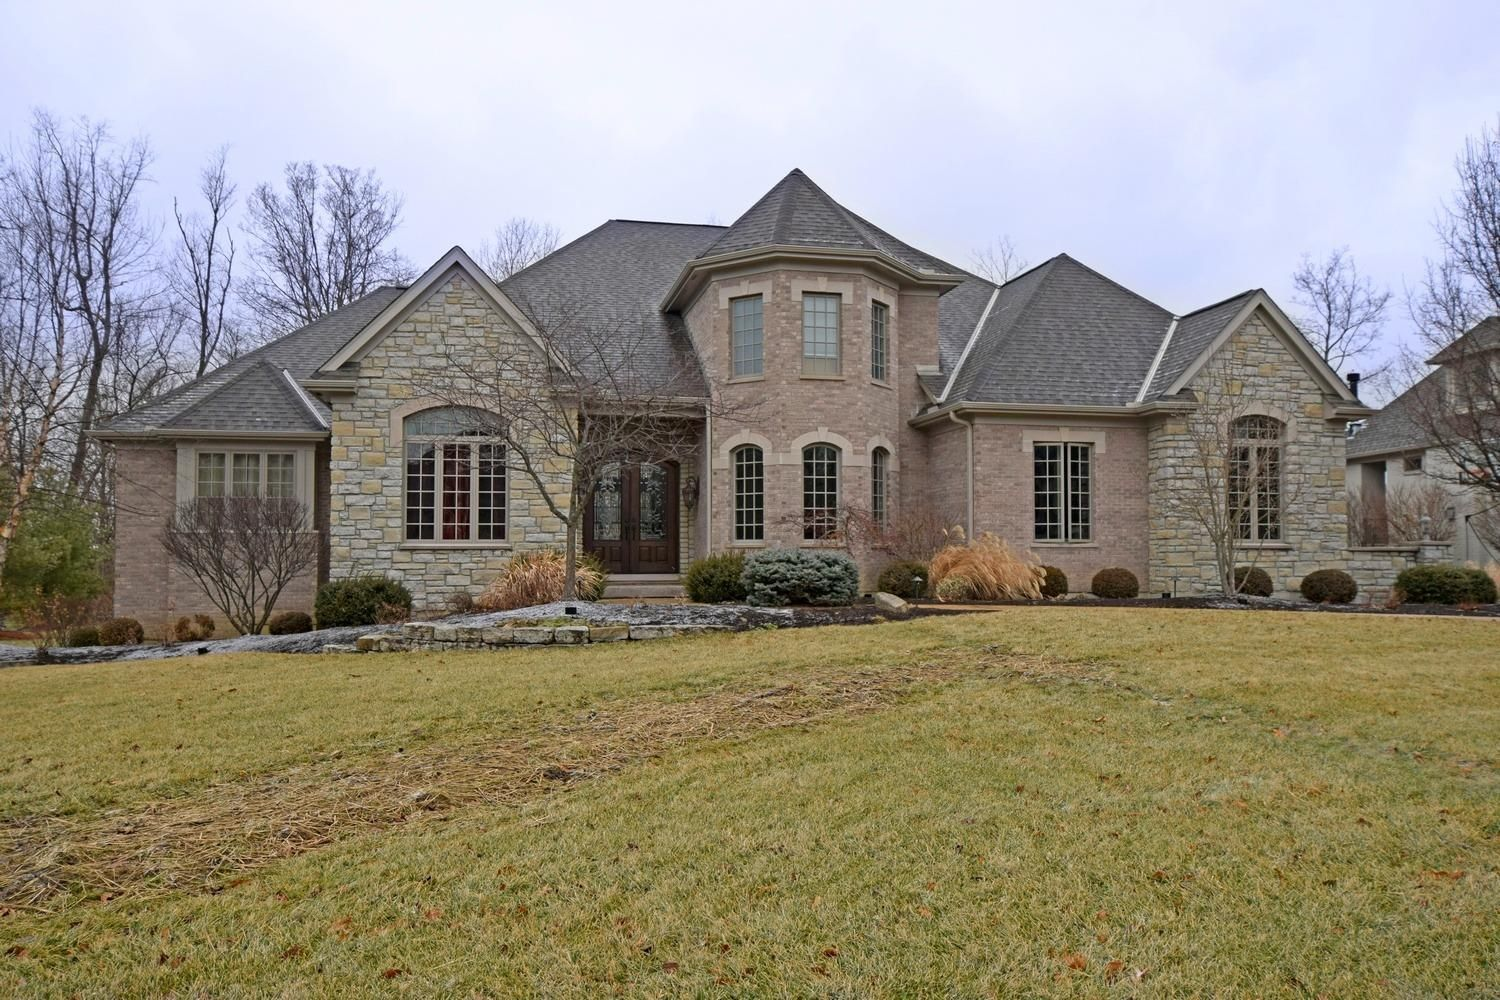 3708 Carmelle Woods Drive, Mason OH 5 bedroom, 5 bathroom